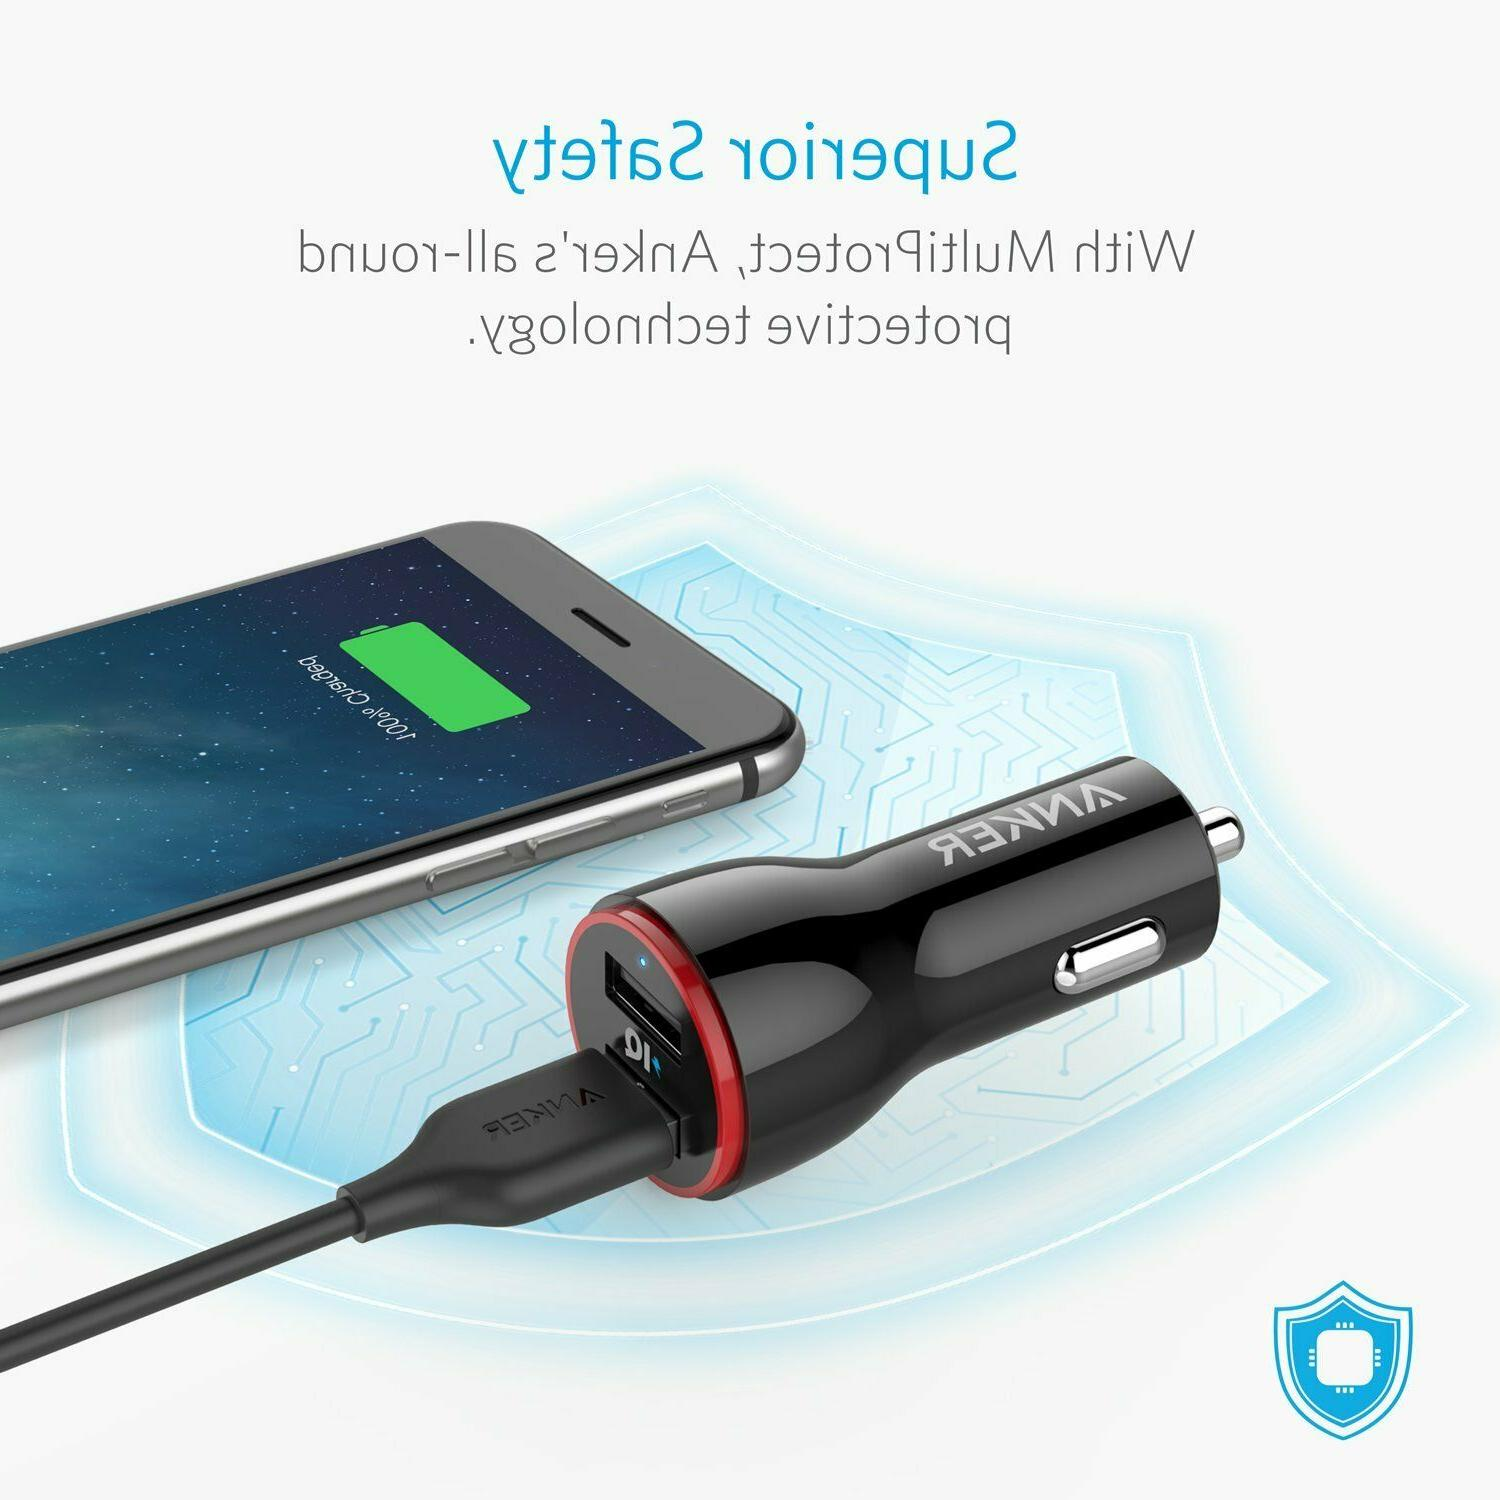 anker car charger Dual for iPhone Ipad more